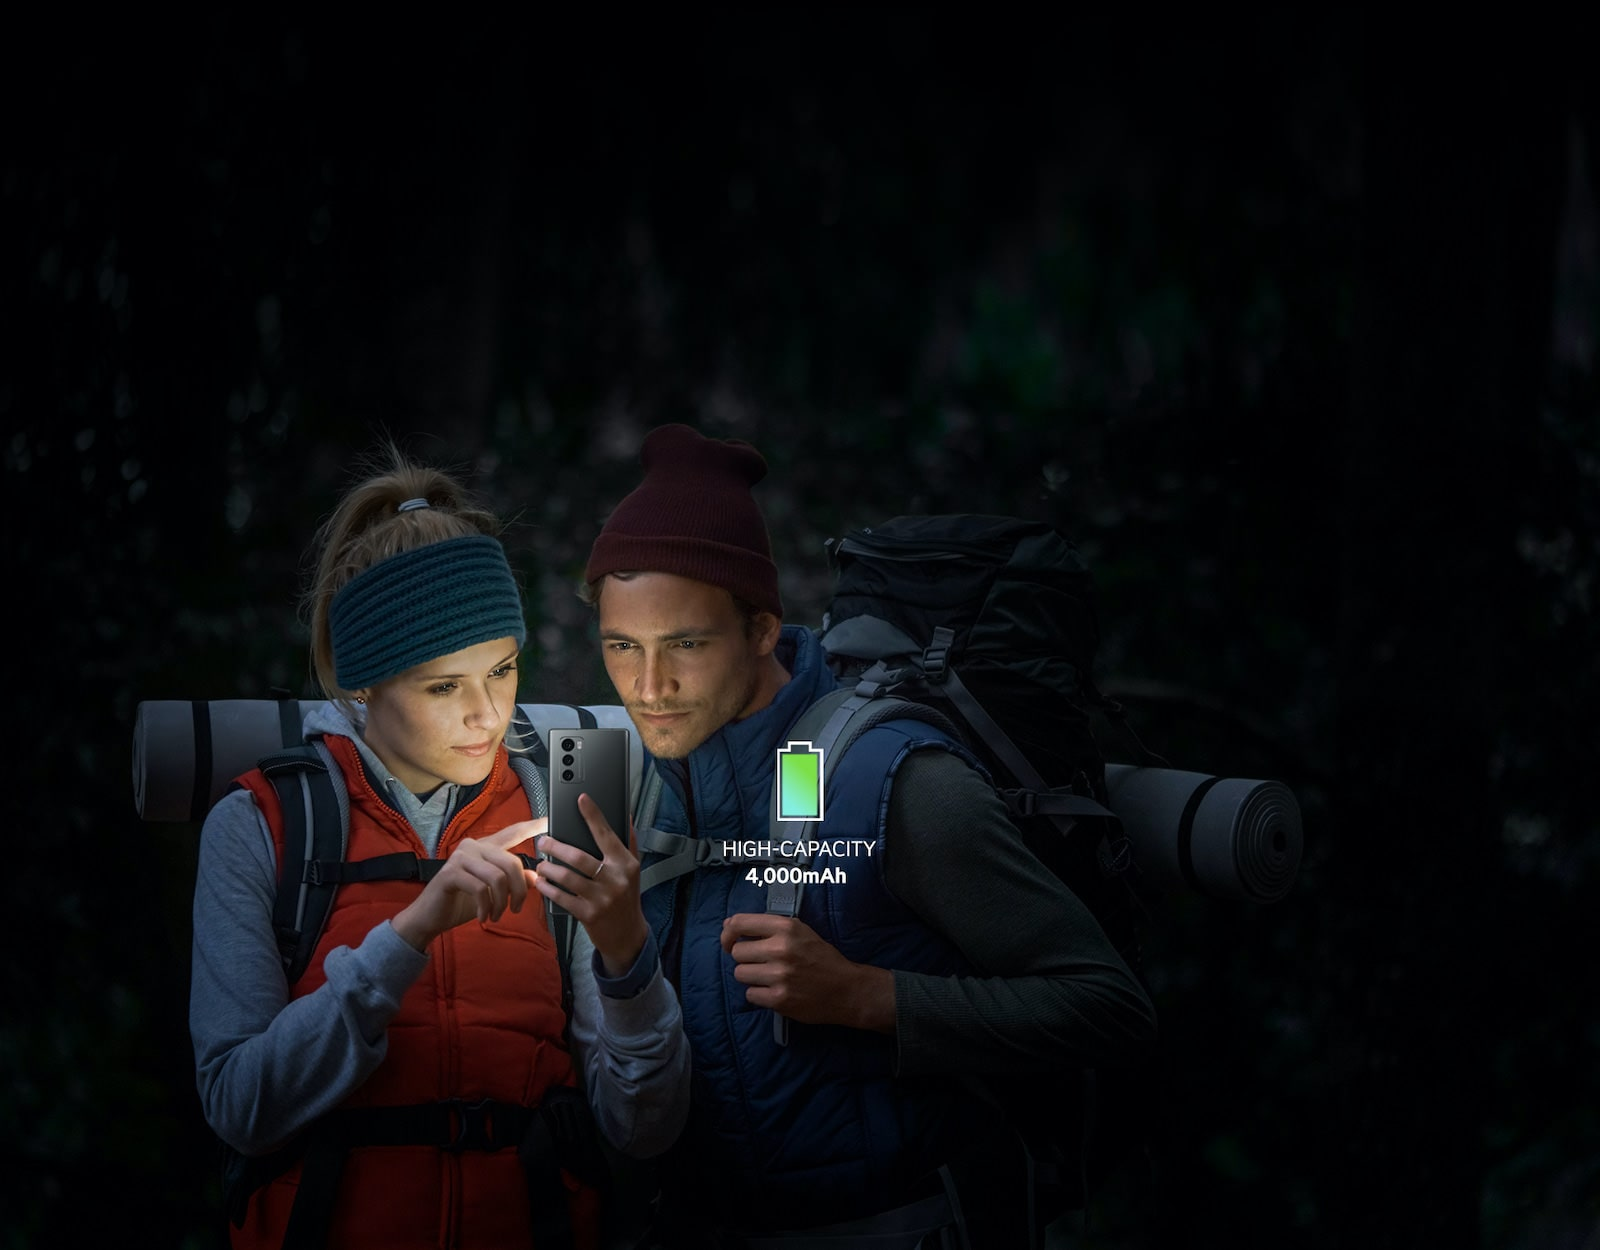 Couple watching a smartphone screen while climbing in the dark night.